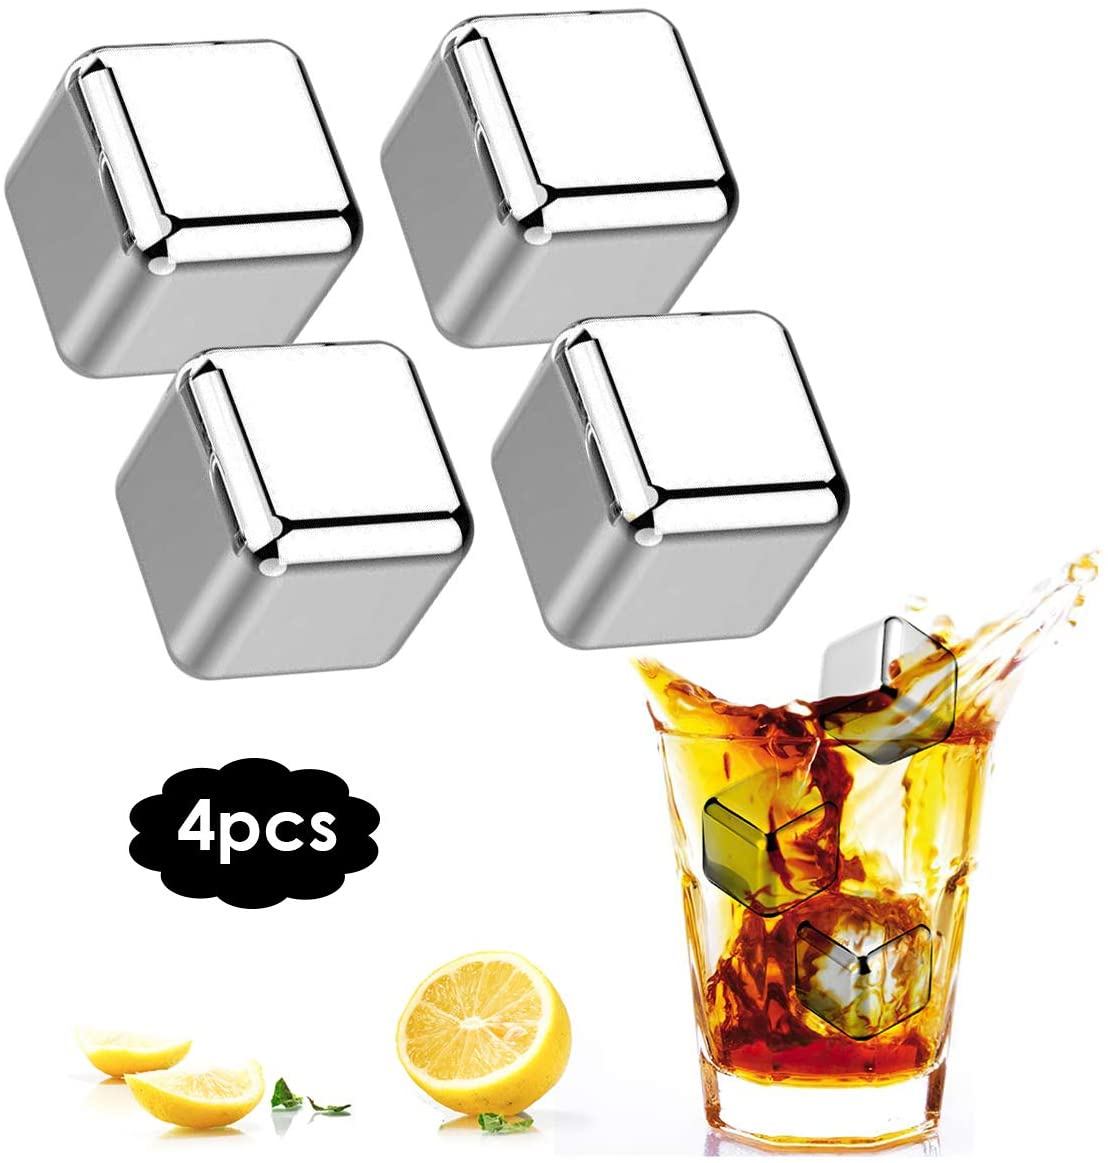 HelloCreate Stainless Steel Cooling Cubes, Whiskey Ice Cubes Reusable Drinks Chilling Stones Wine Beer Cooler